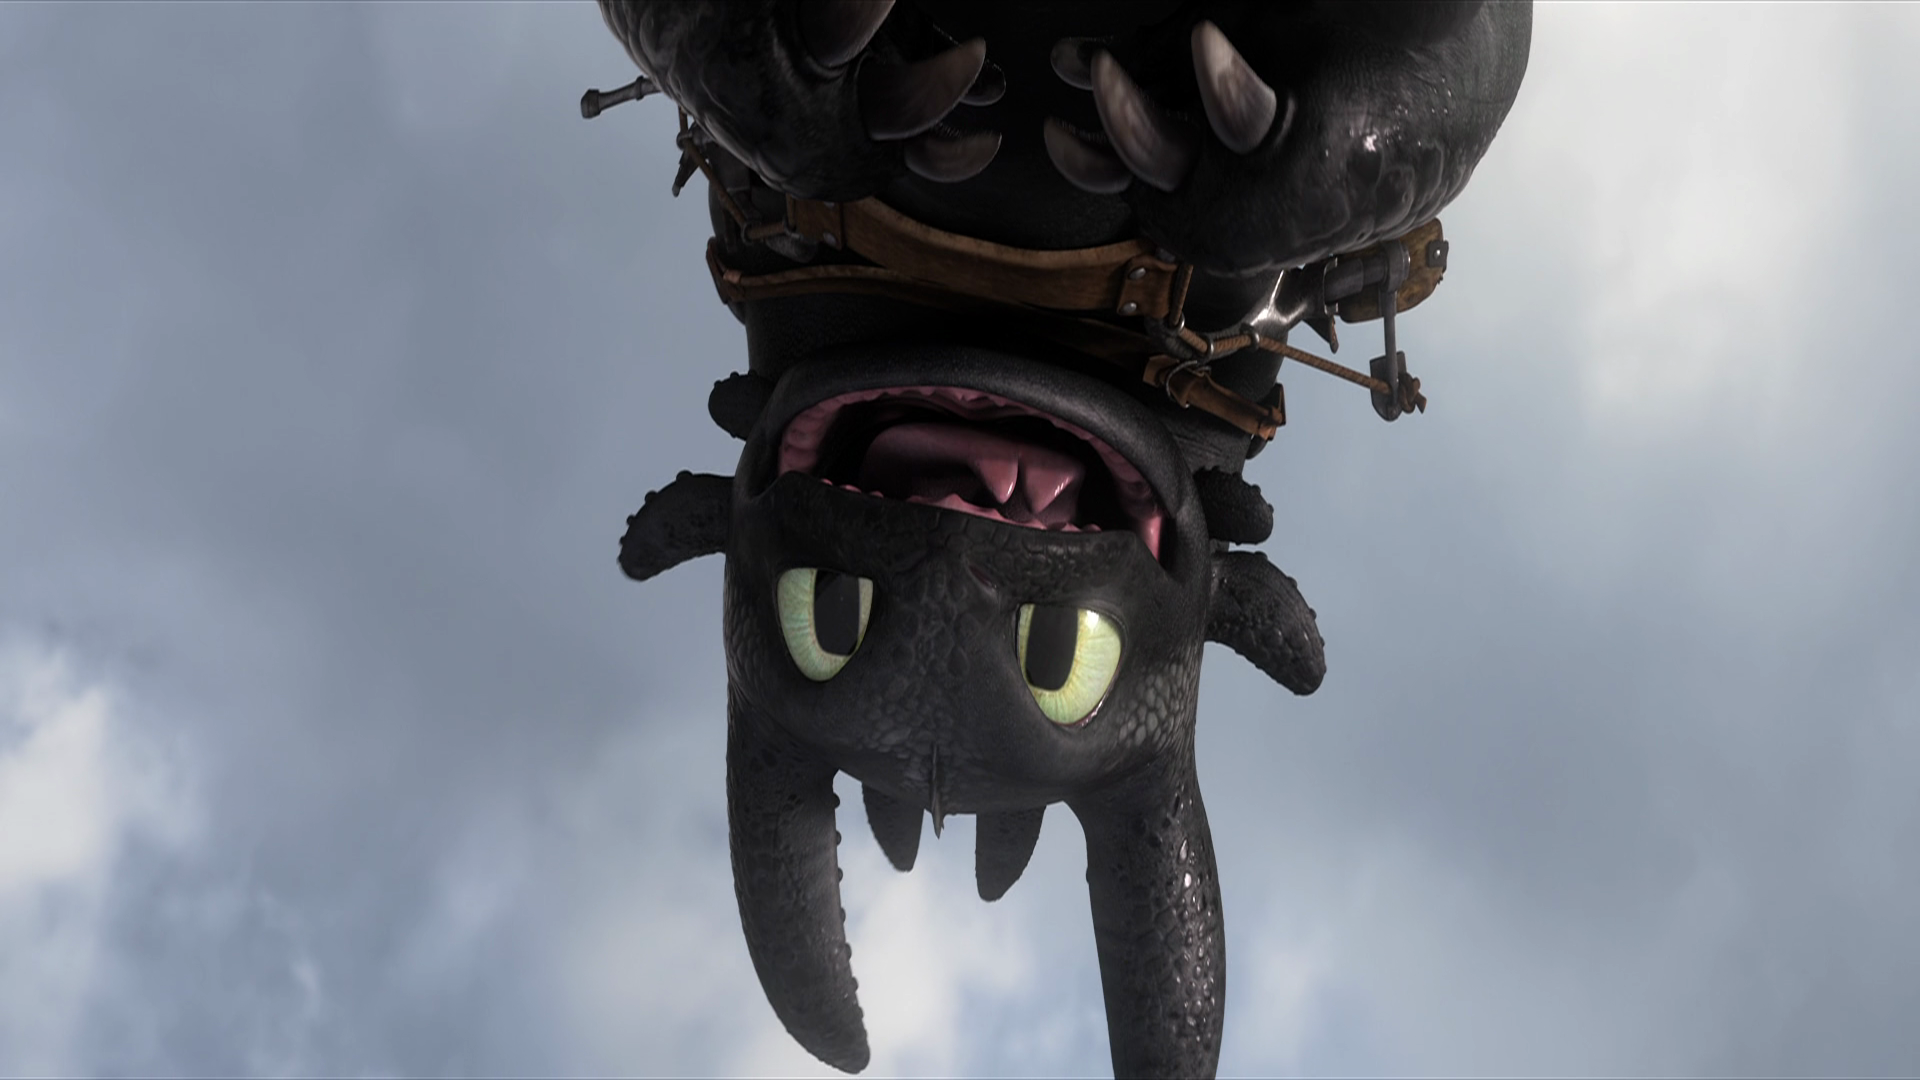 How To Train Your Dragon 2 Hd Wallpaper Background Image